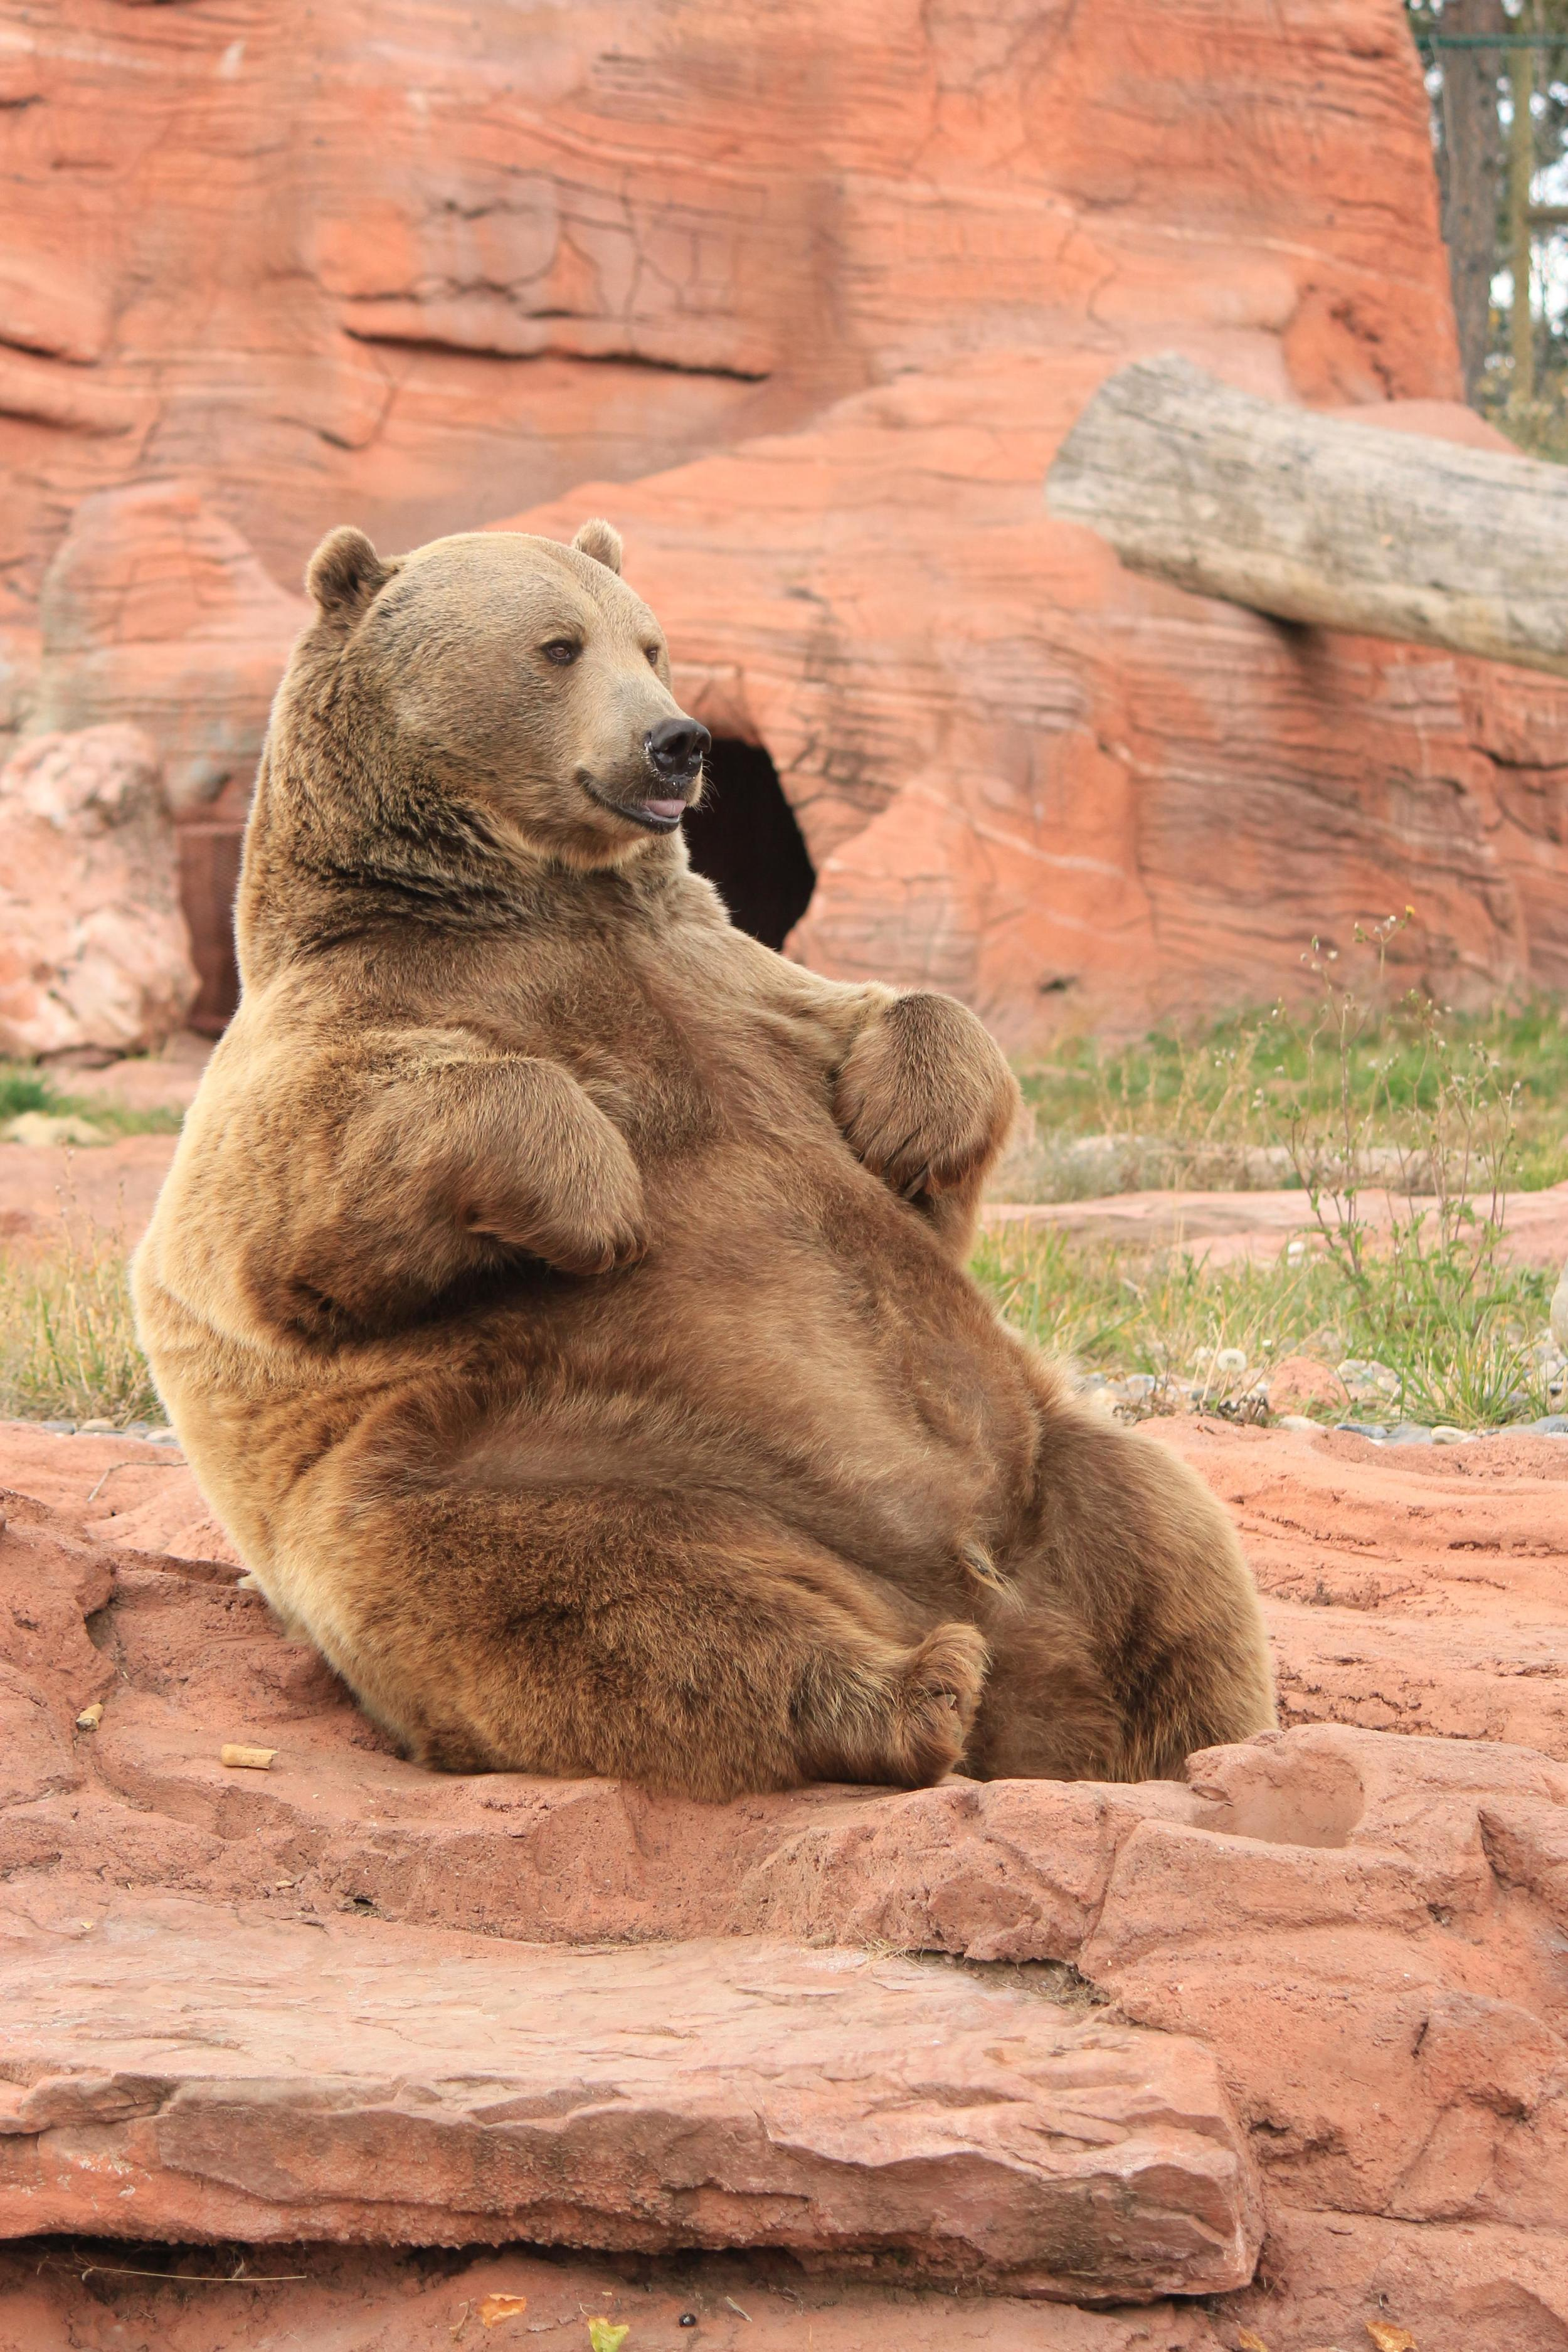 This bear looks insanely happy. Like he just ate an entire mountain of mac and cheese. Jealous.